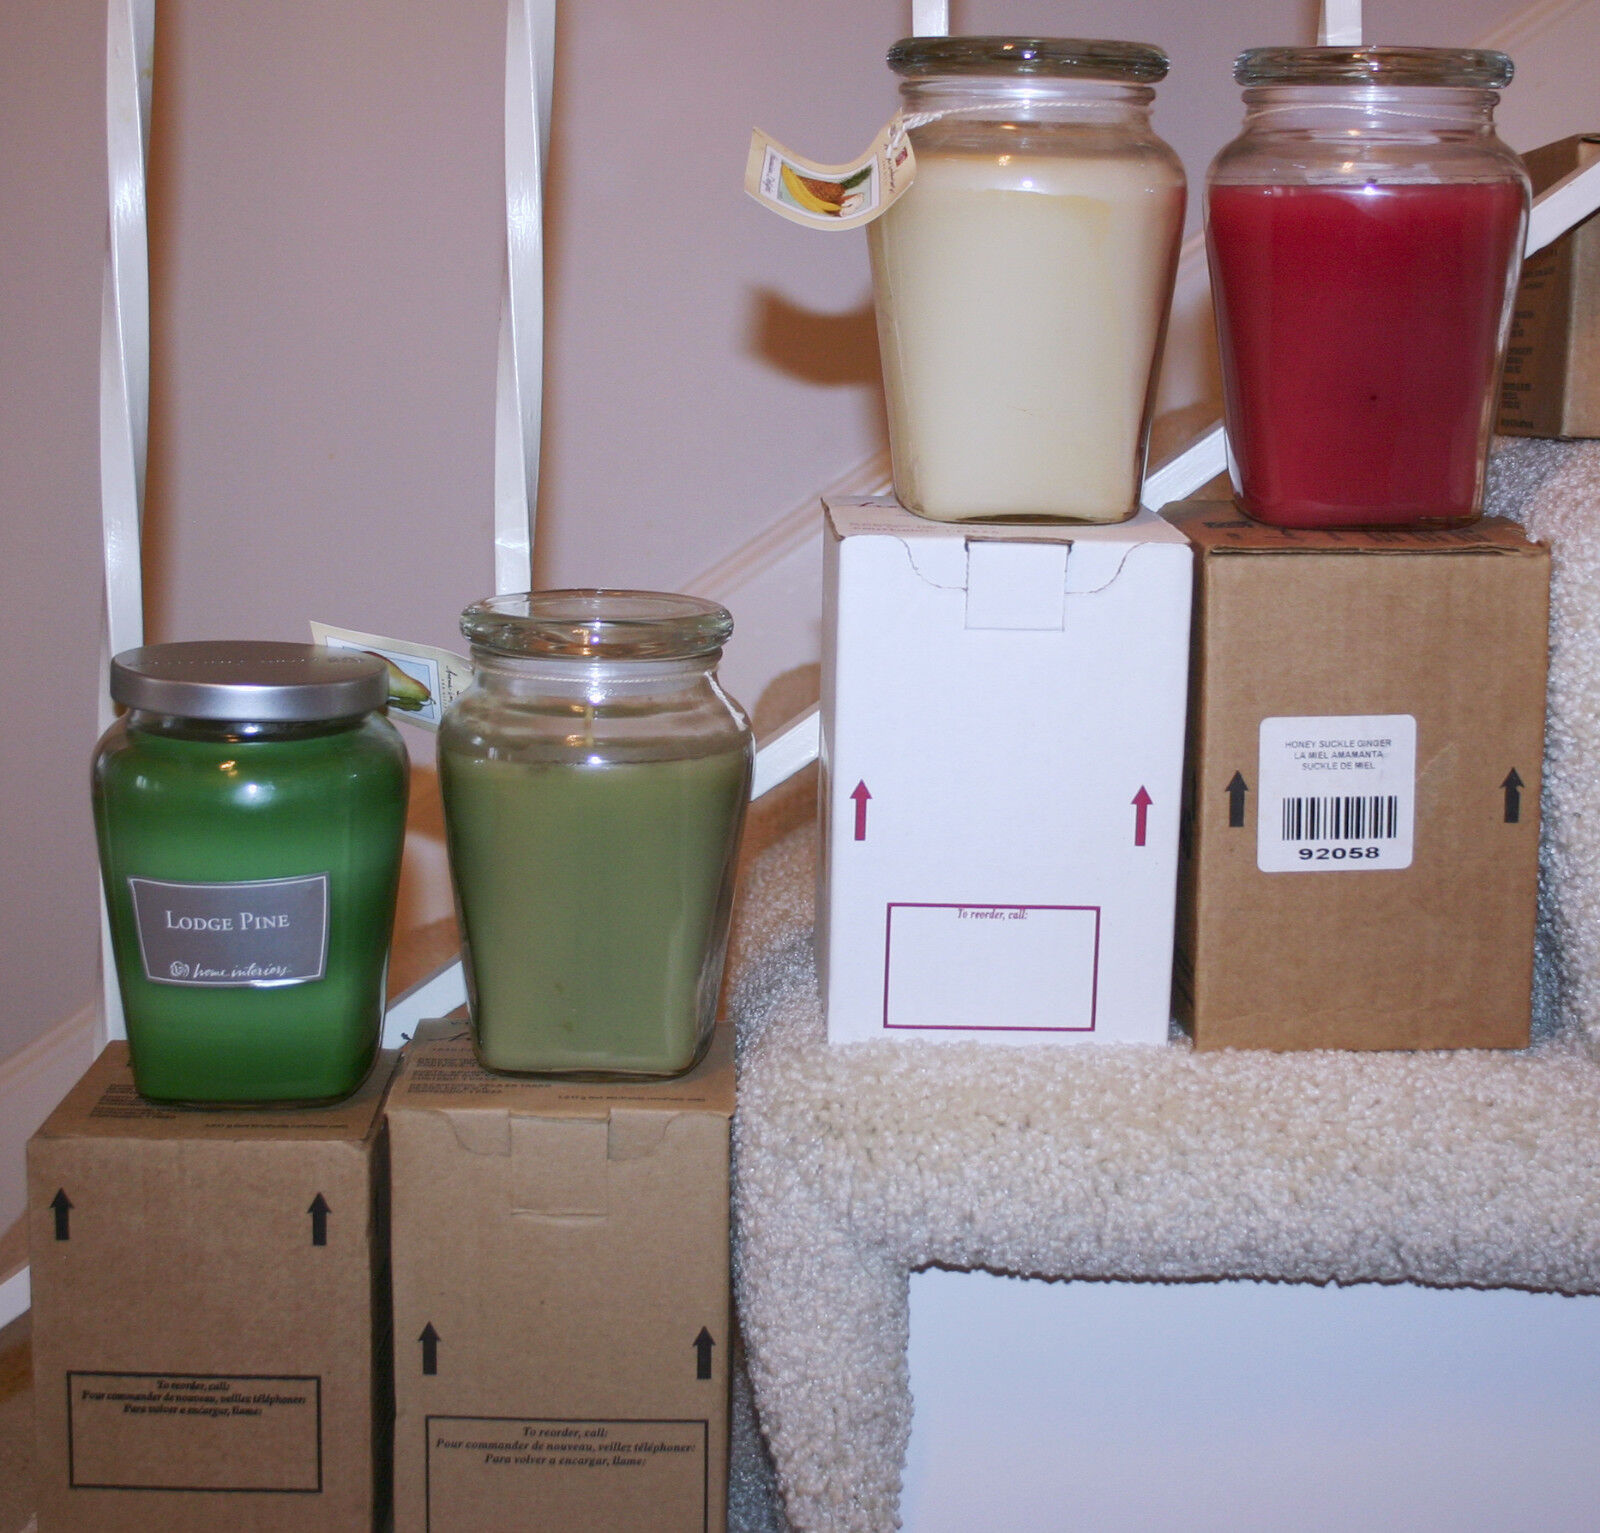 Home interiors retired scents 22 ounce ginger jar candles 2 2 of 2 see more